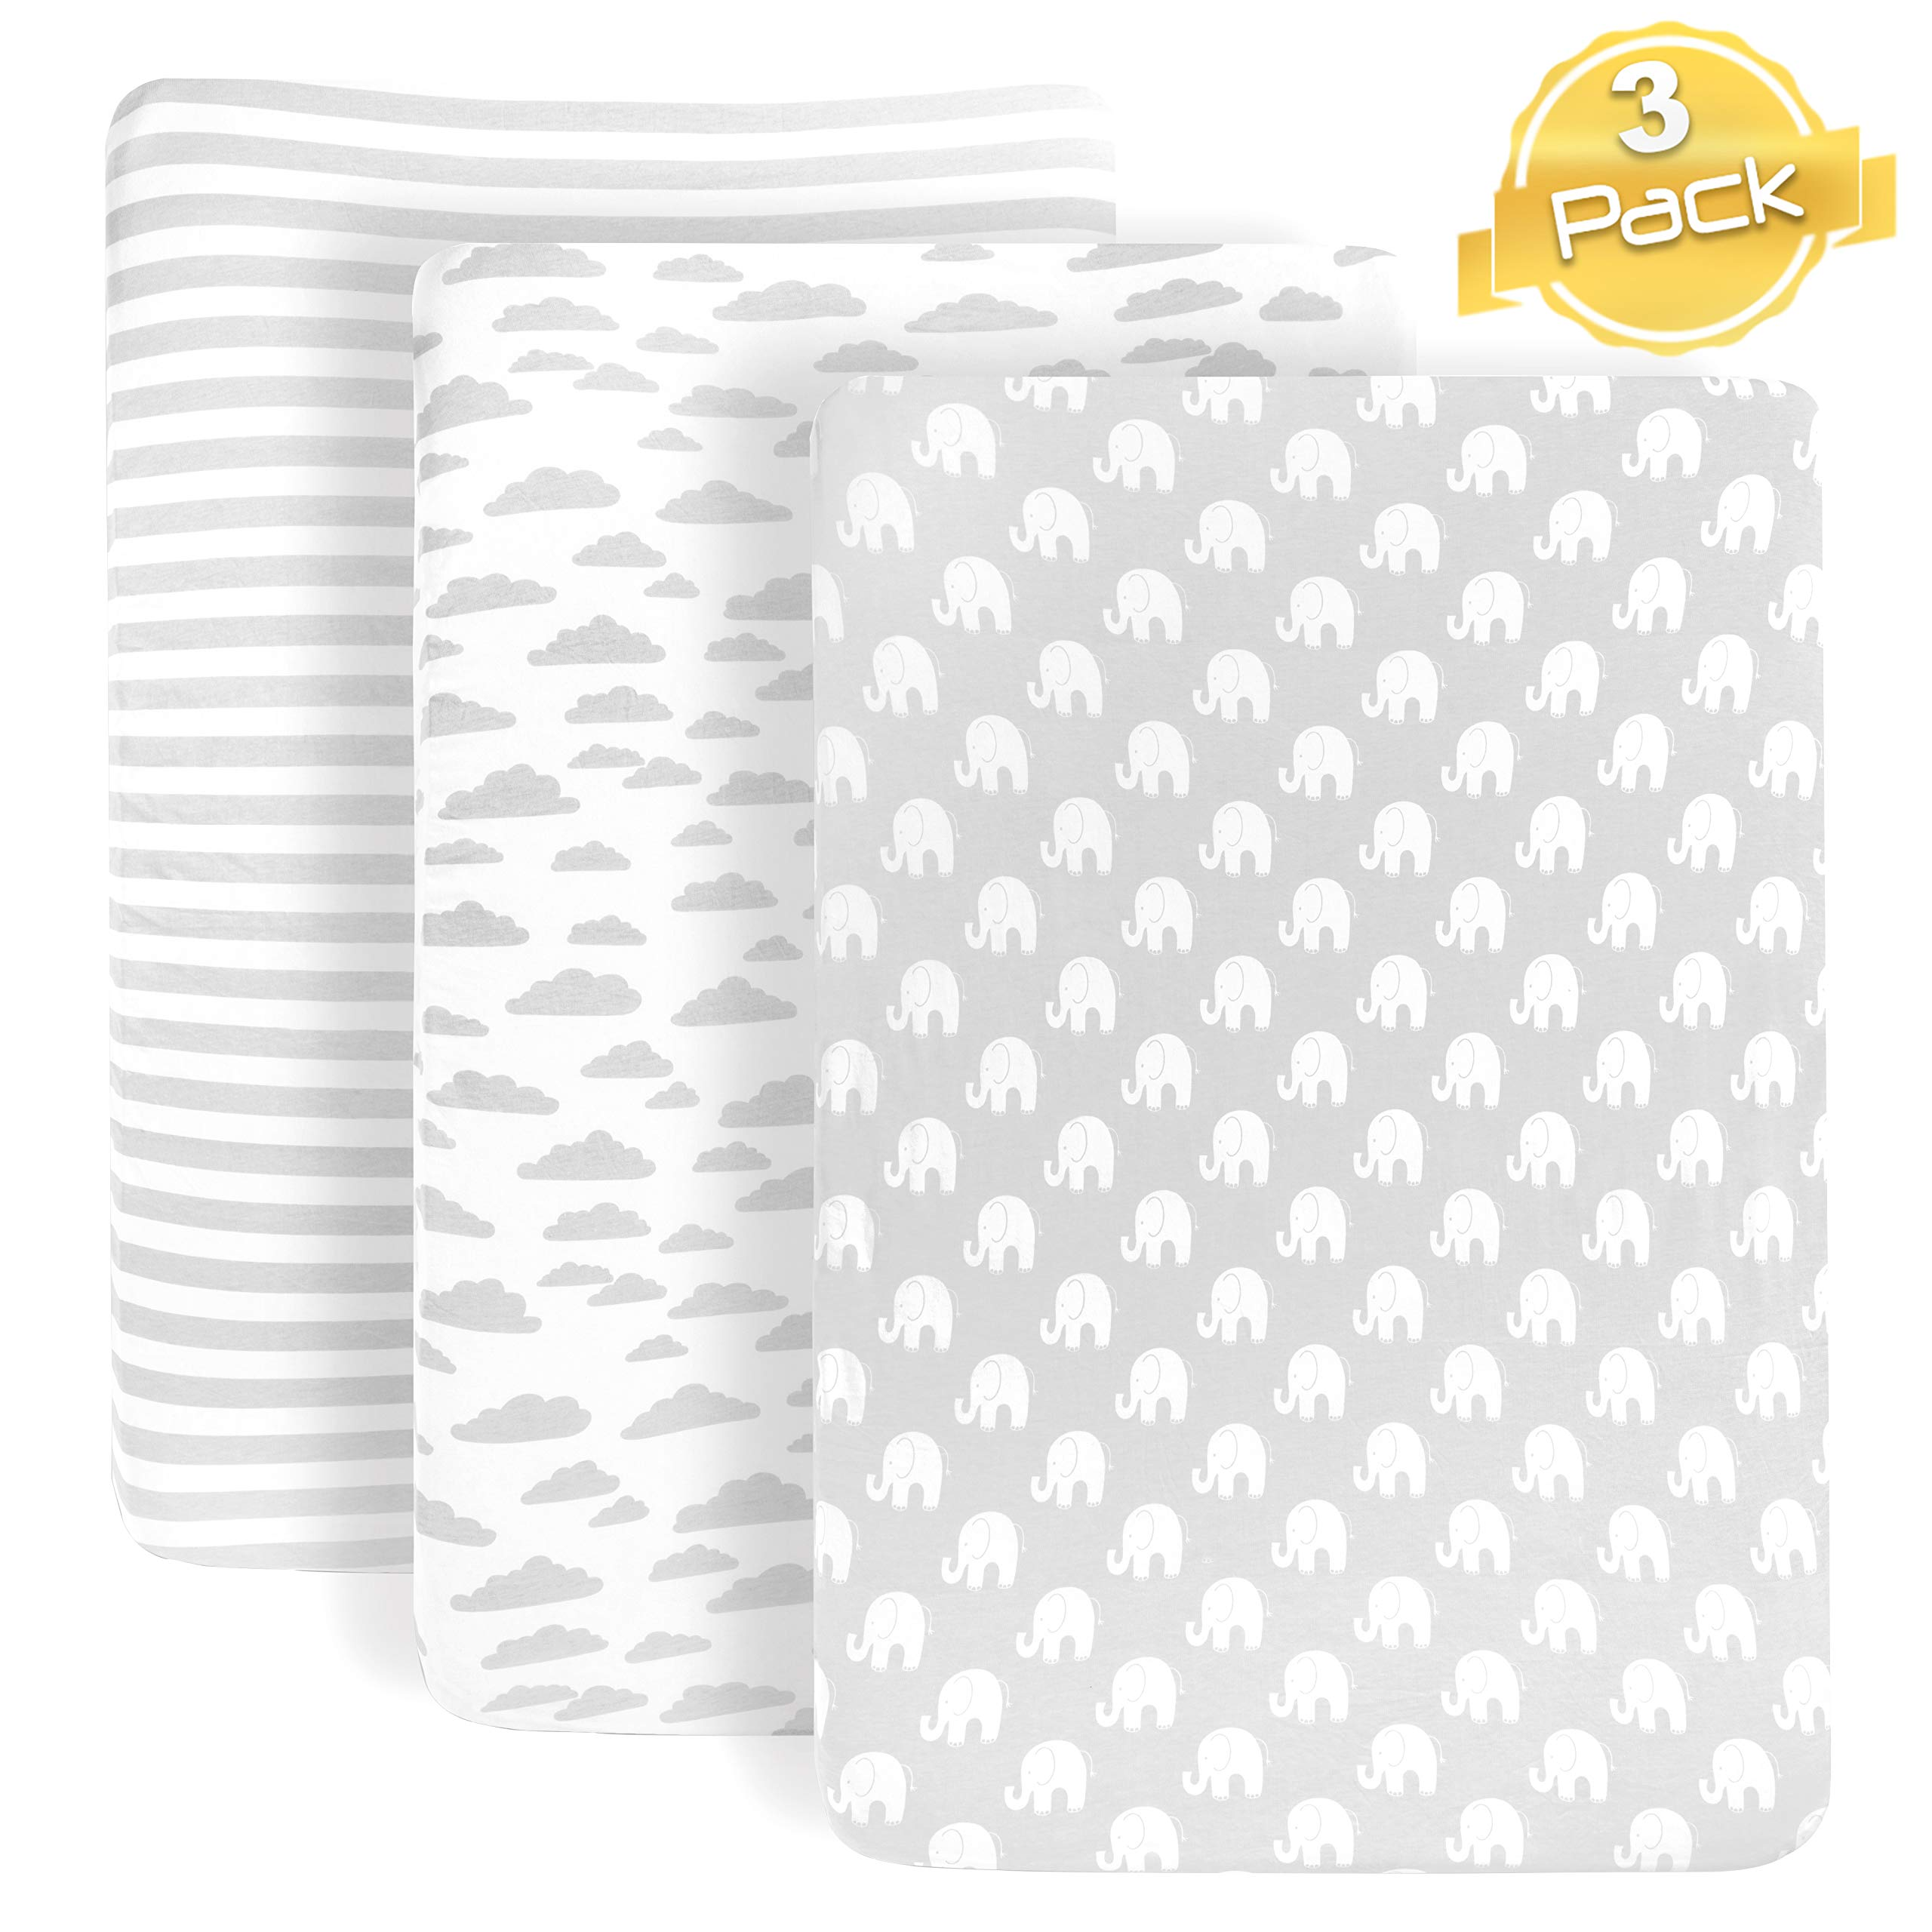 Pack n Play Playard Sheets Set | 3 Pack | 100% Super Soft Jersey Knit Cotton (150 GSM) | Portable Mini Crib Mattress Fitted Sheet for Boys & Girls by BaeBae Goods by BaeBae Goods